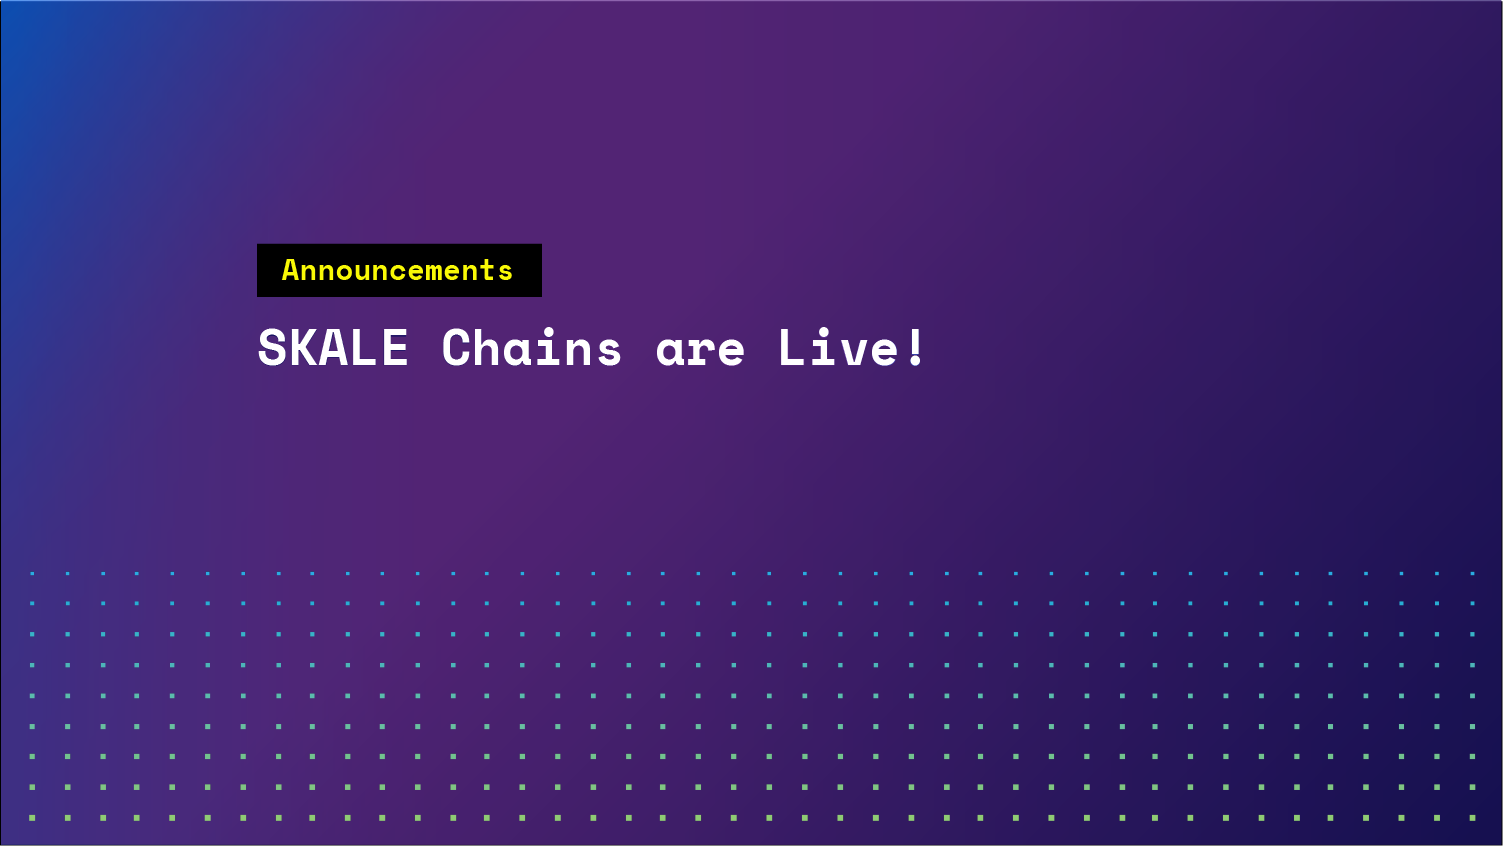 SKALE Chains are Live!